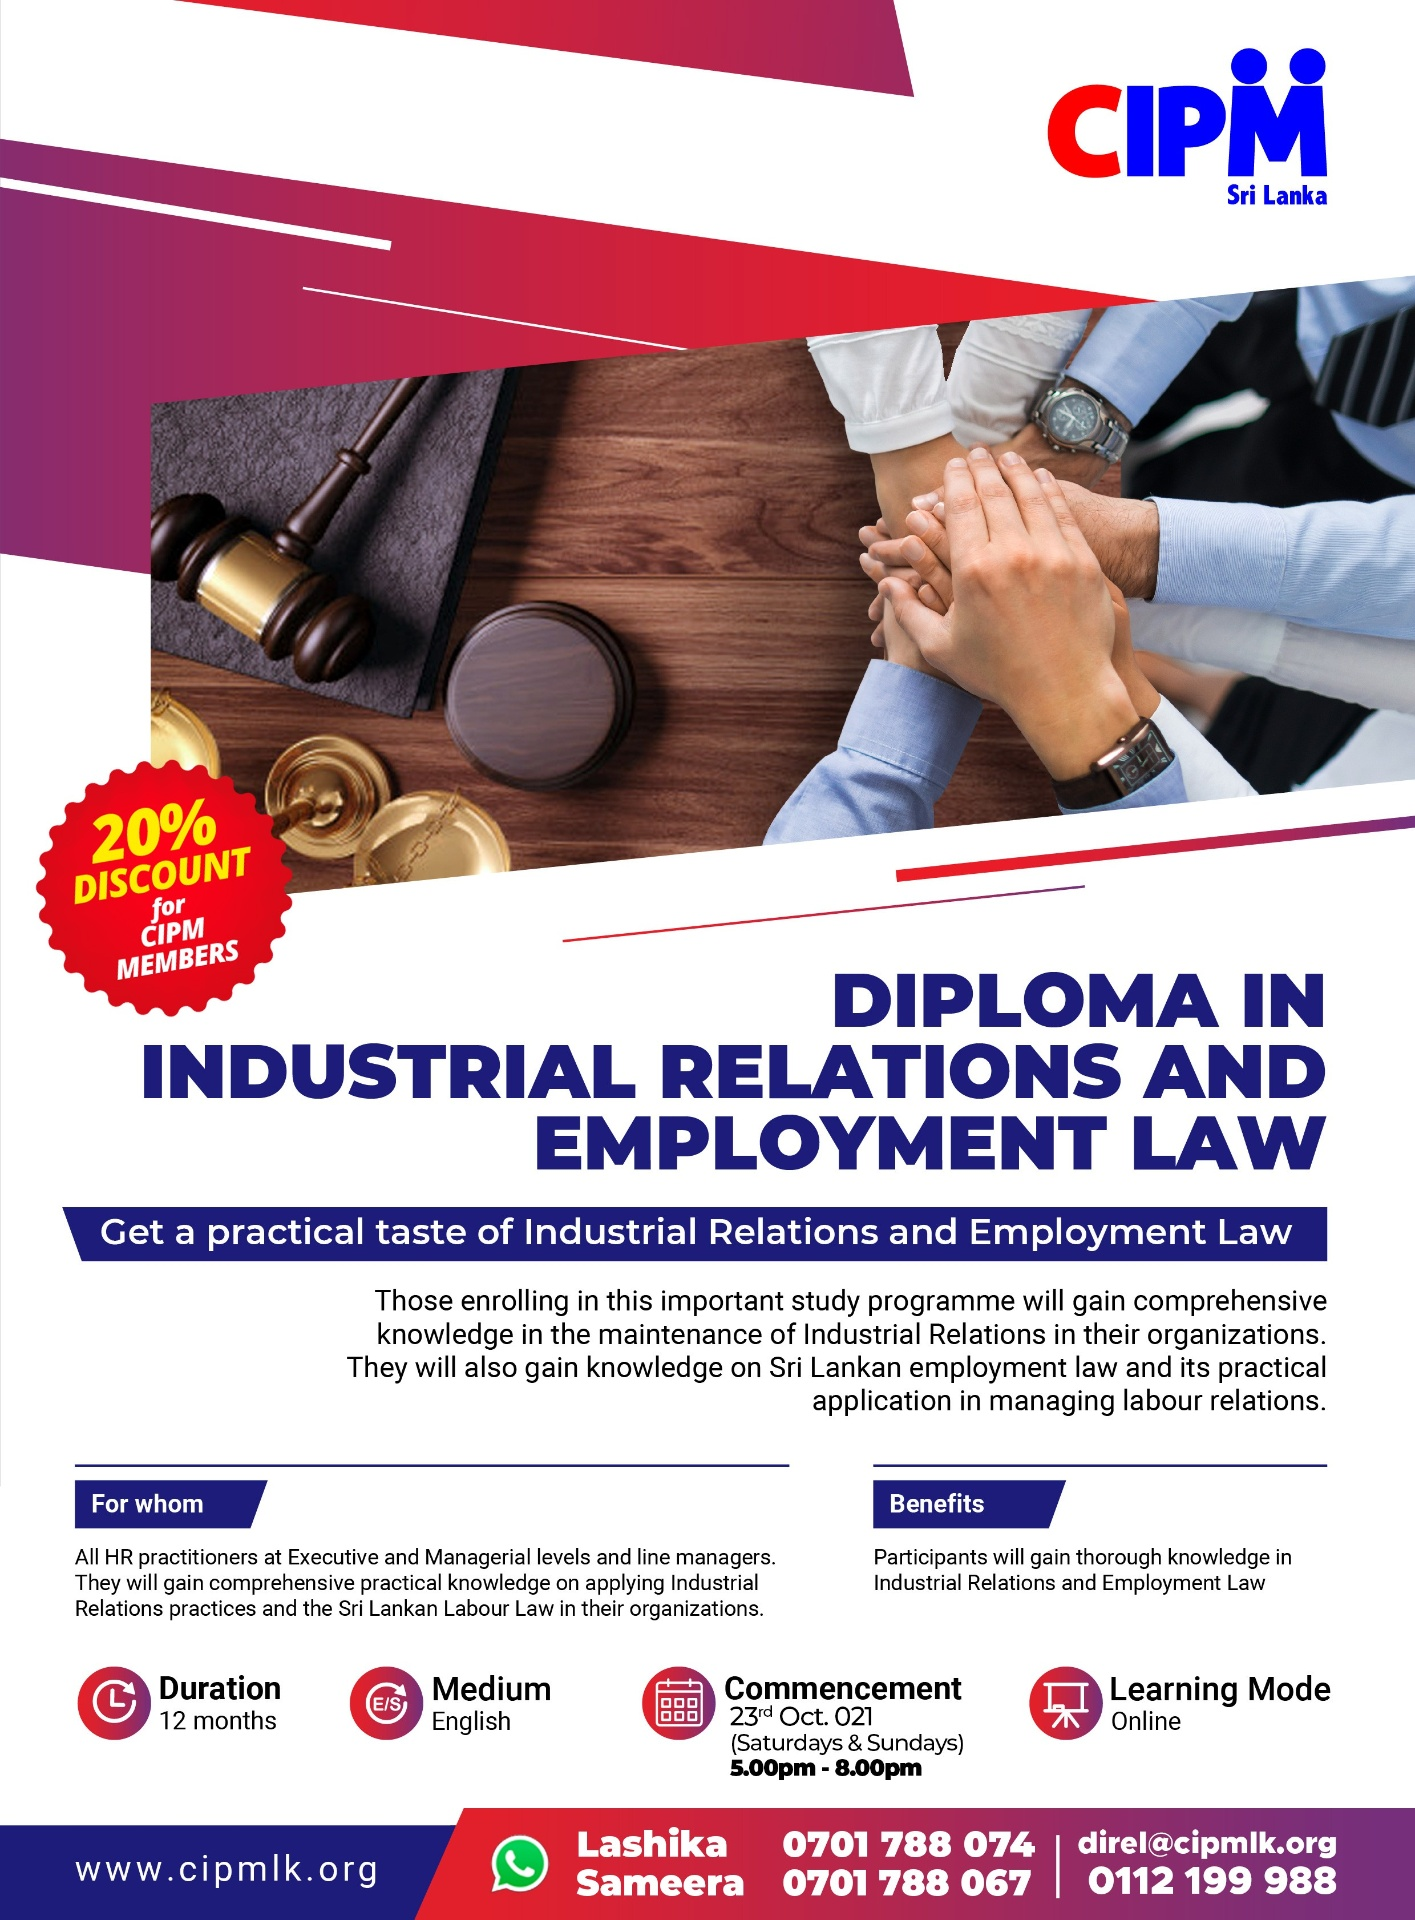 Diploma in Industrial Relations and Employment Law